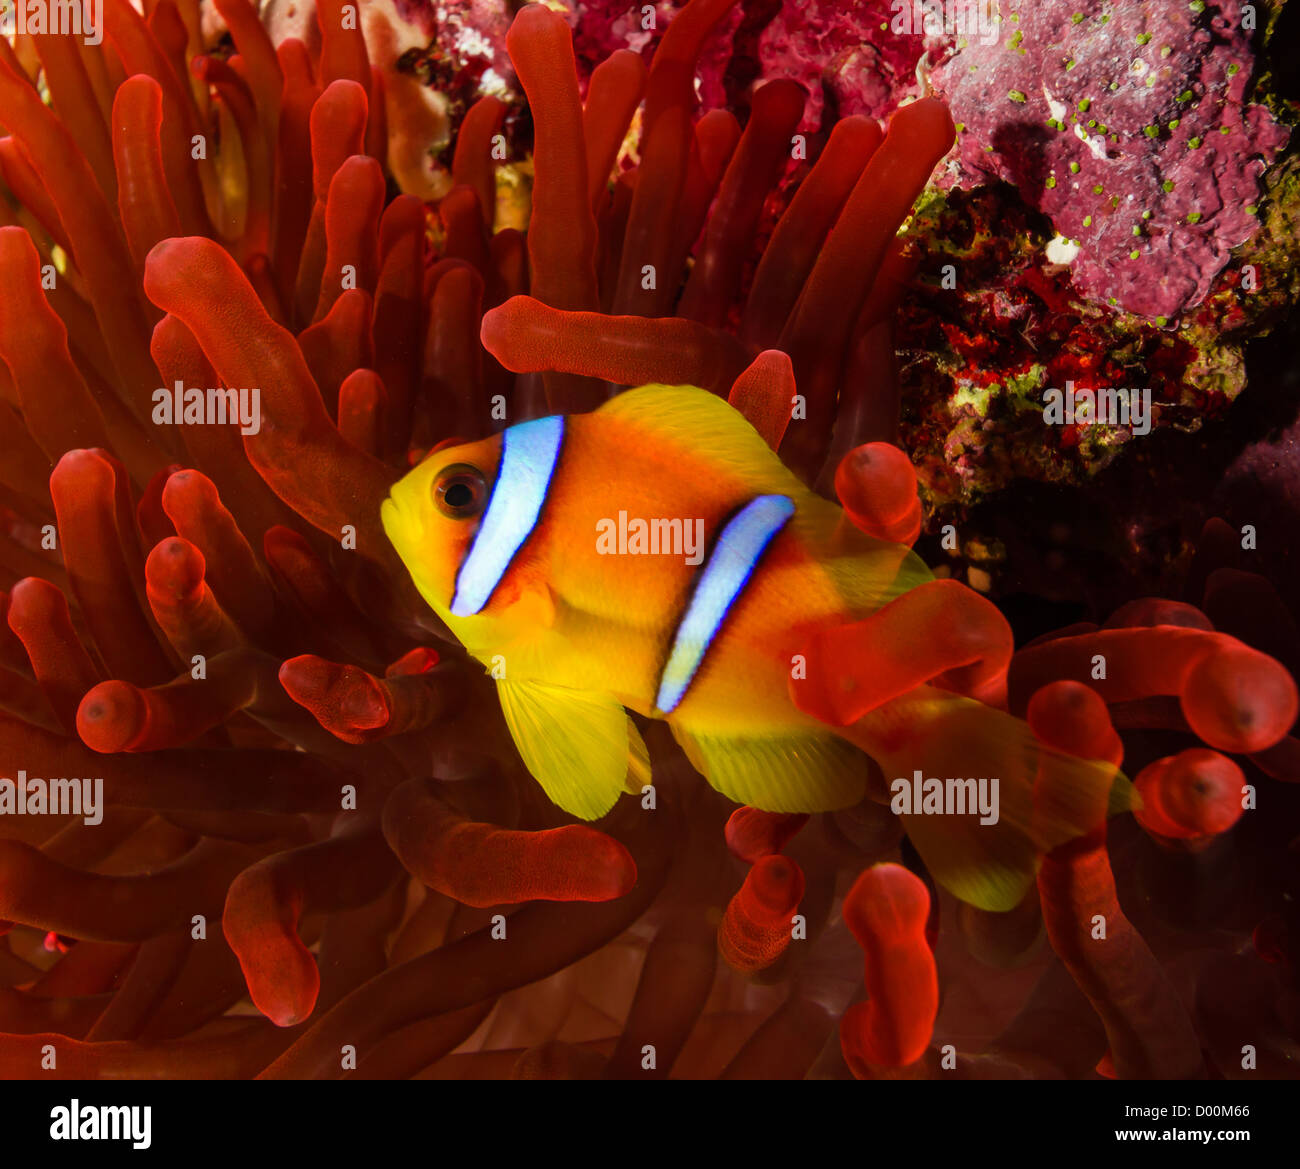 Two Clown Fish Swimming Stock Photos & Two Clown Fish Swimming Stock ...